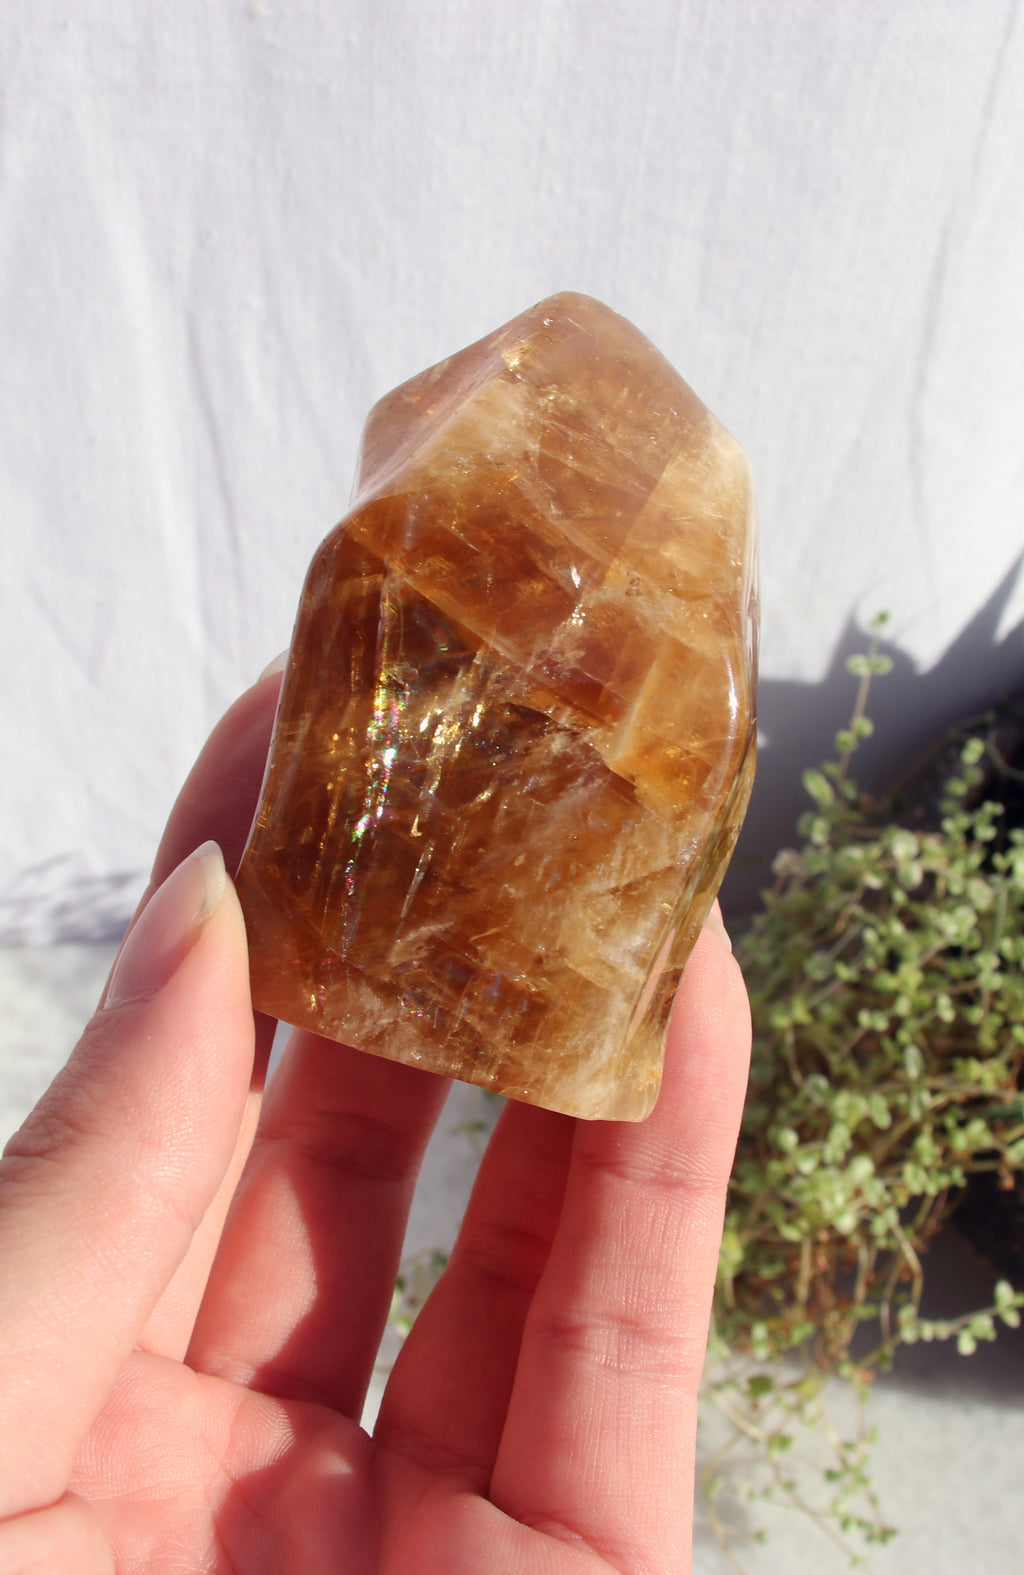 Honey Calcite Flame